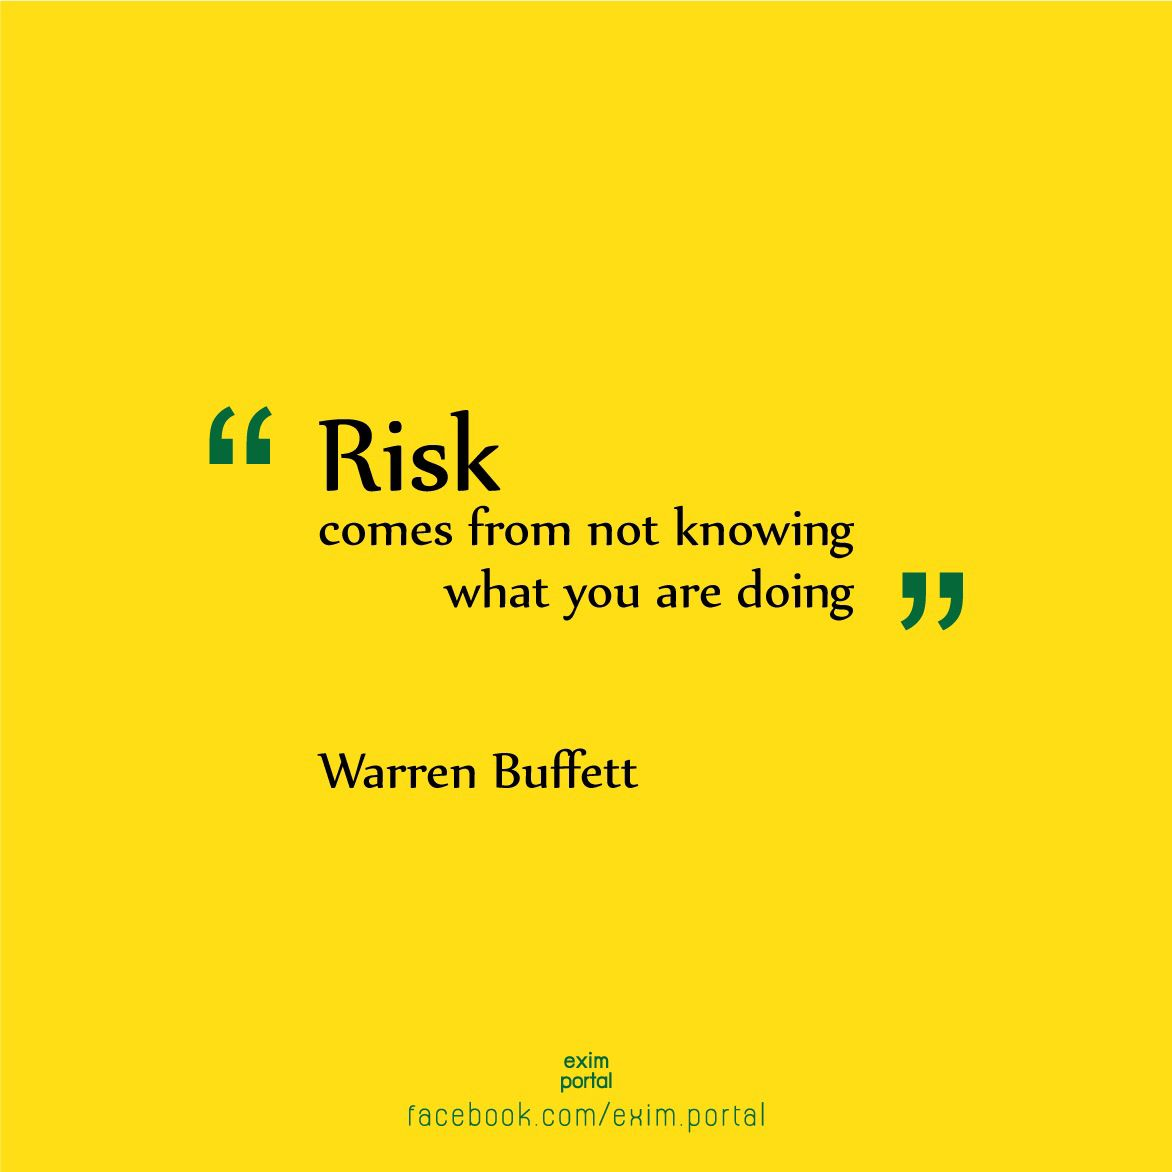 "Facebook Stock Quote Glamorous Risk Comes From Not Knowing What You Are Doing"" Warren Buffet"